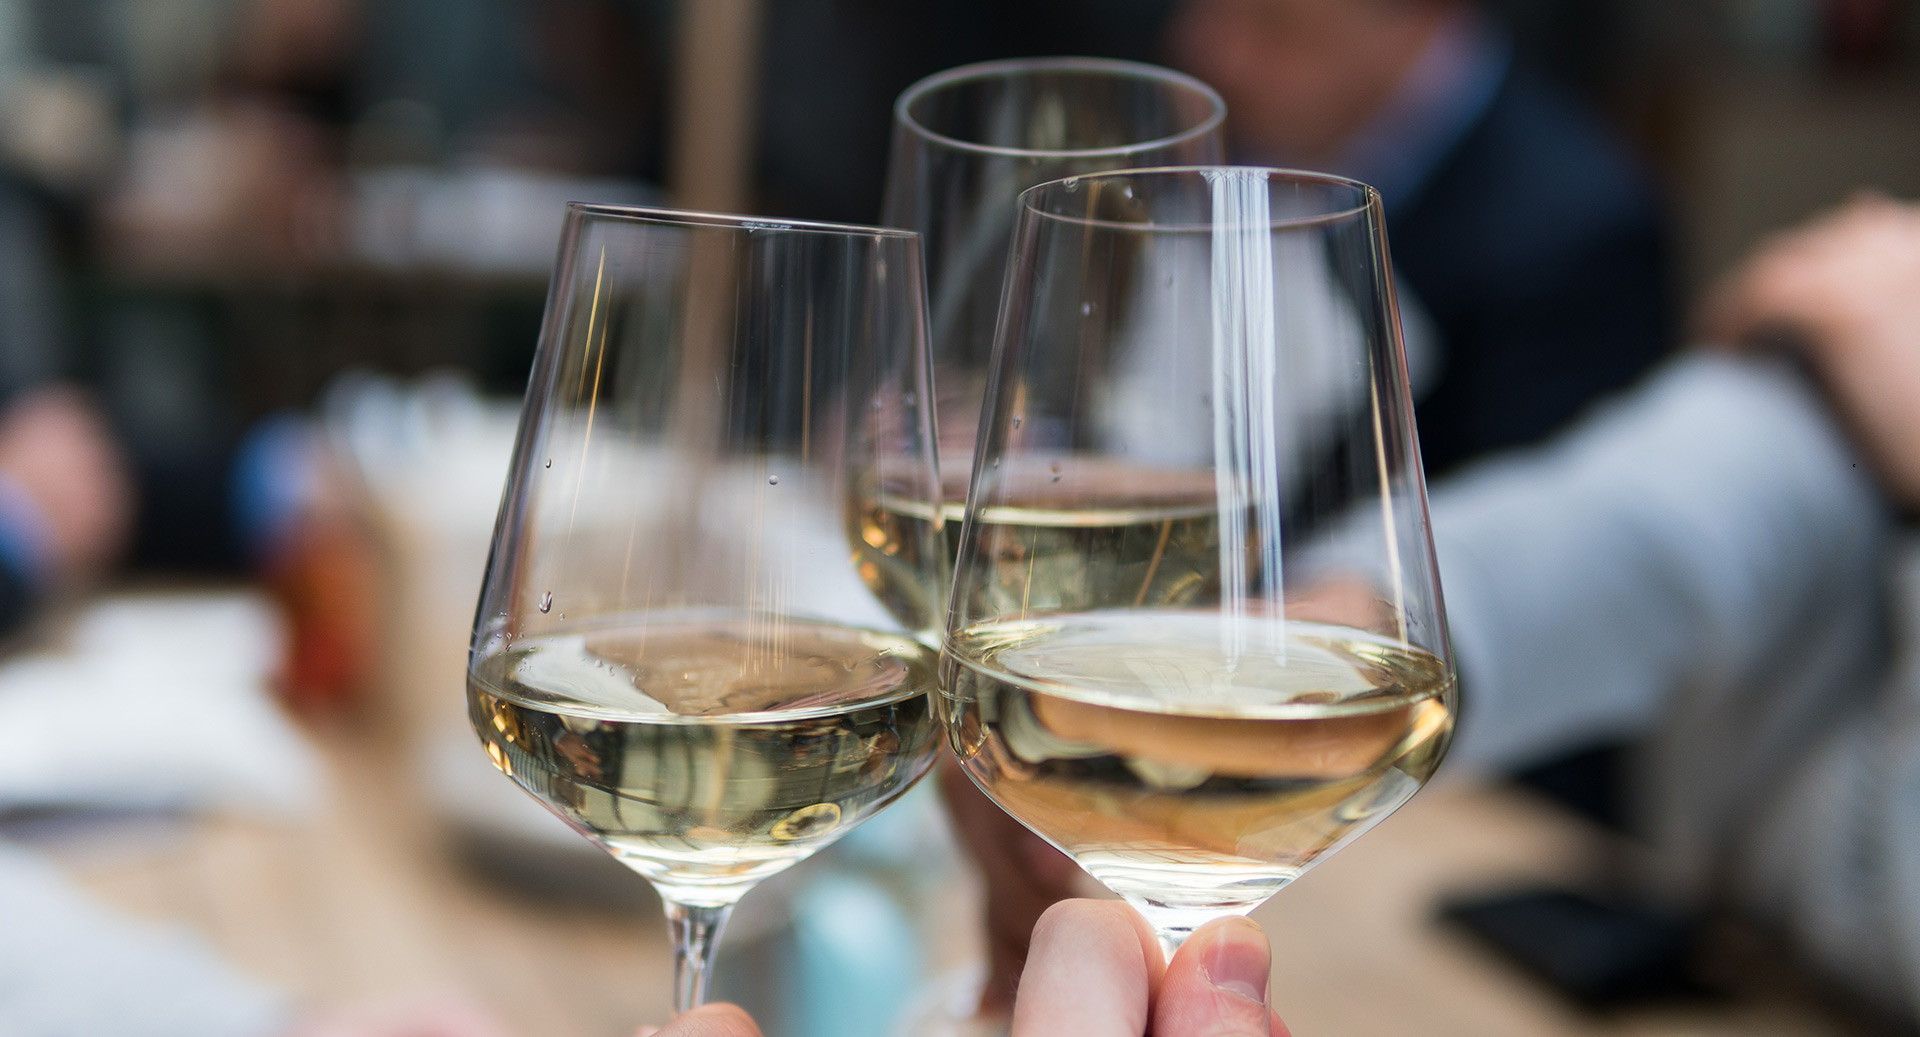 The 2018 Newport Beach Wine & Food Festival